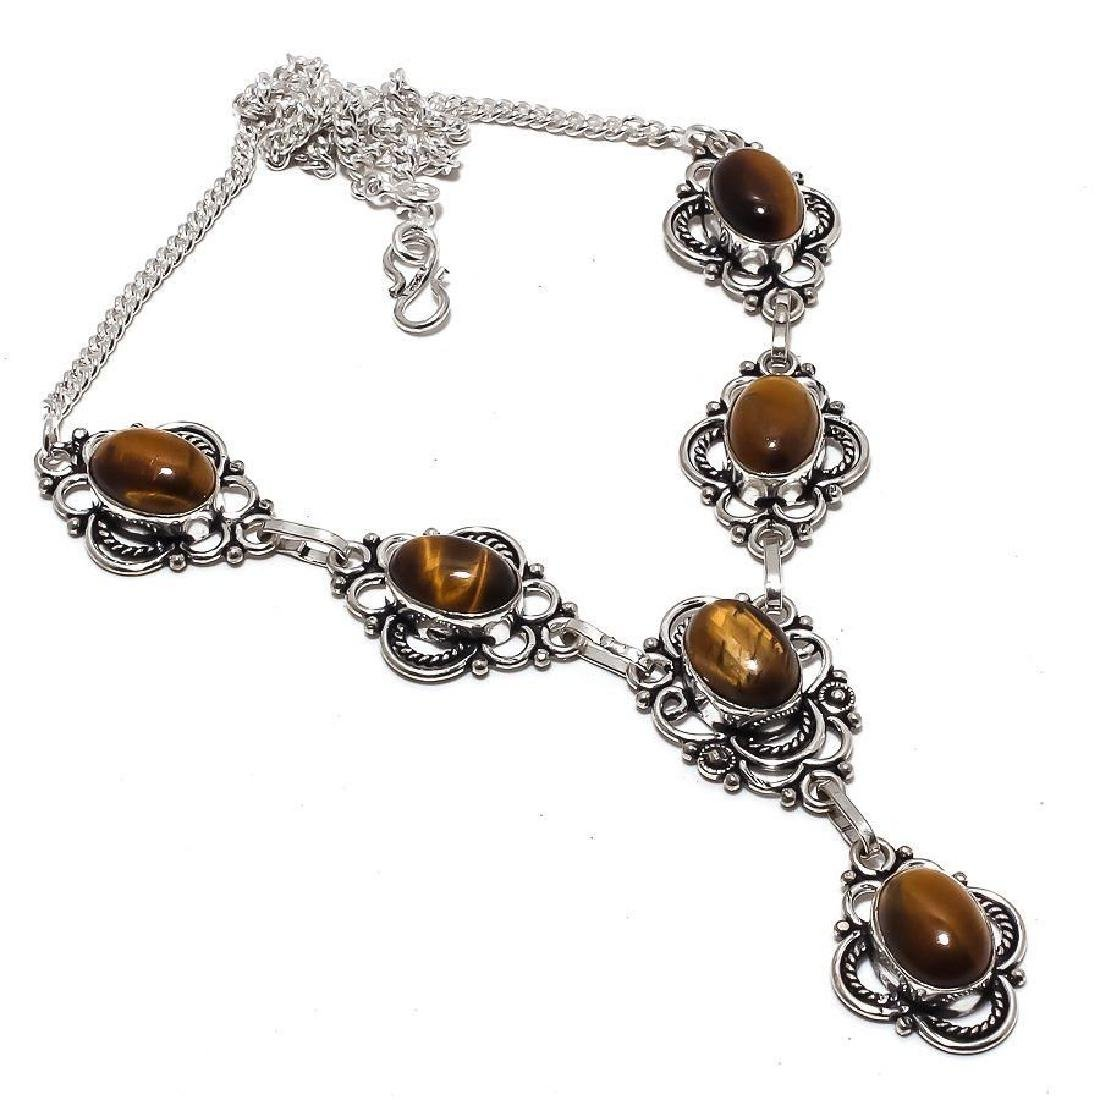 STERLING SILVER TIGER EYE CABOCHON NECKLACE 29 Gr 18 In